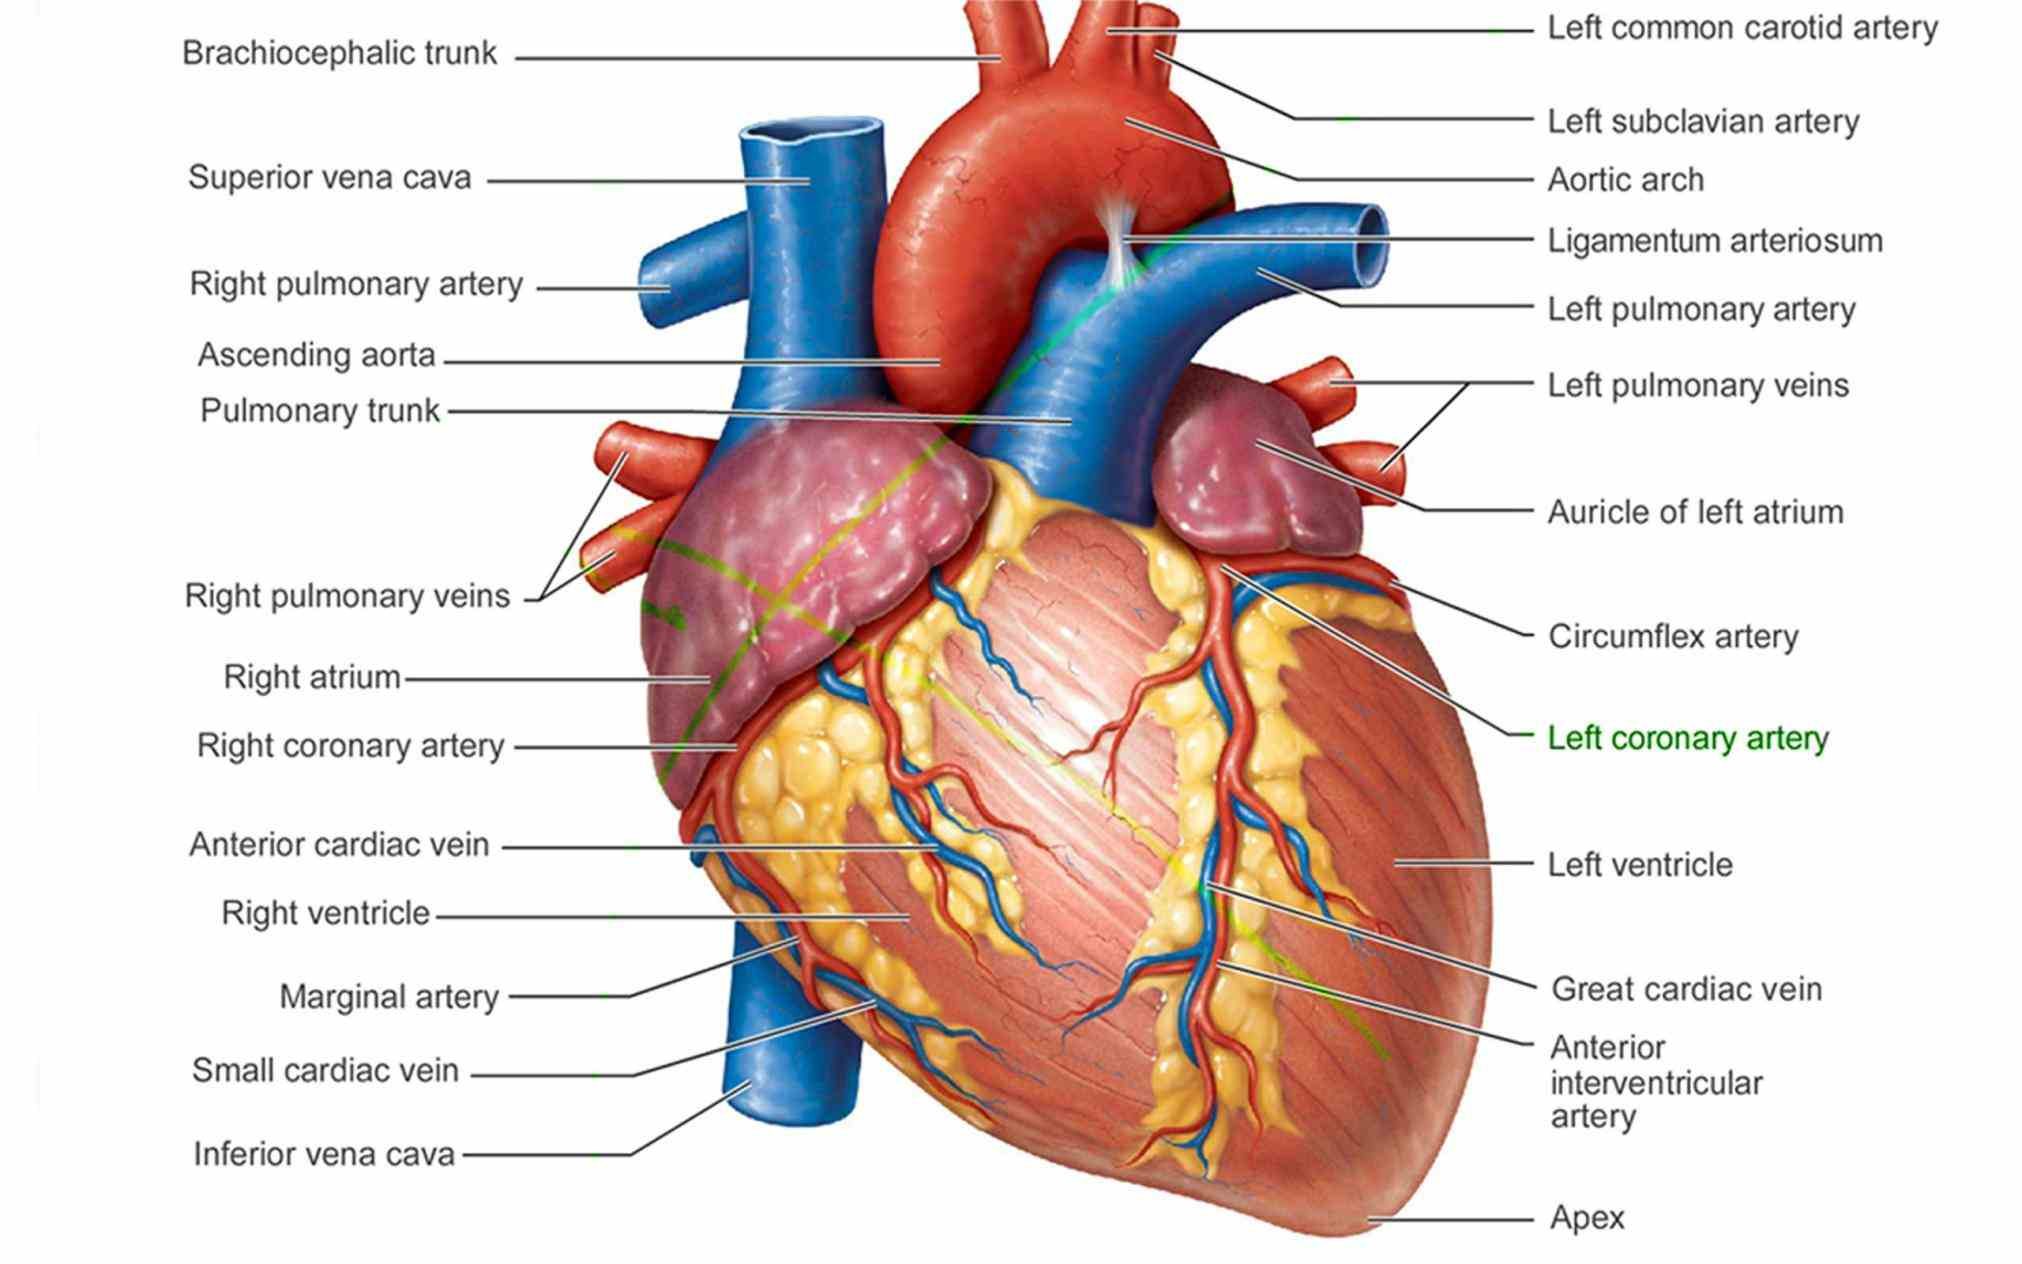 Heart Location In The Human Body Pictures Wallpapers